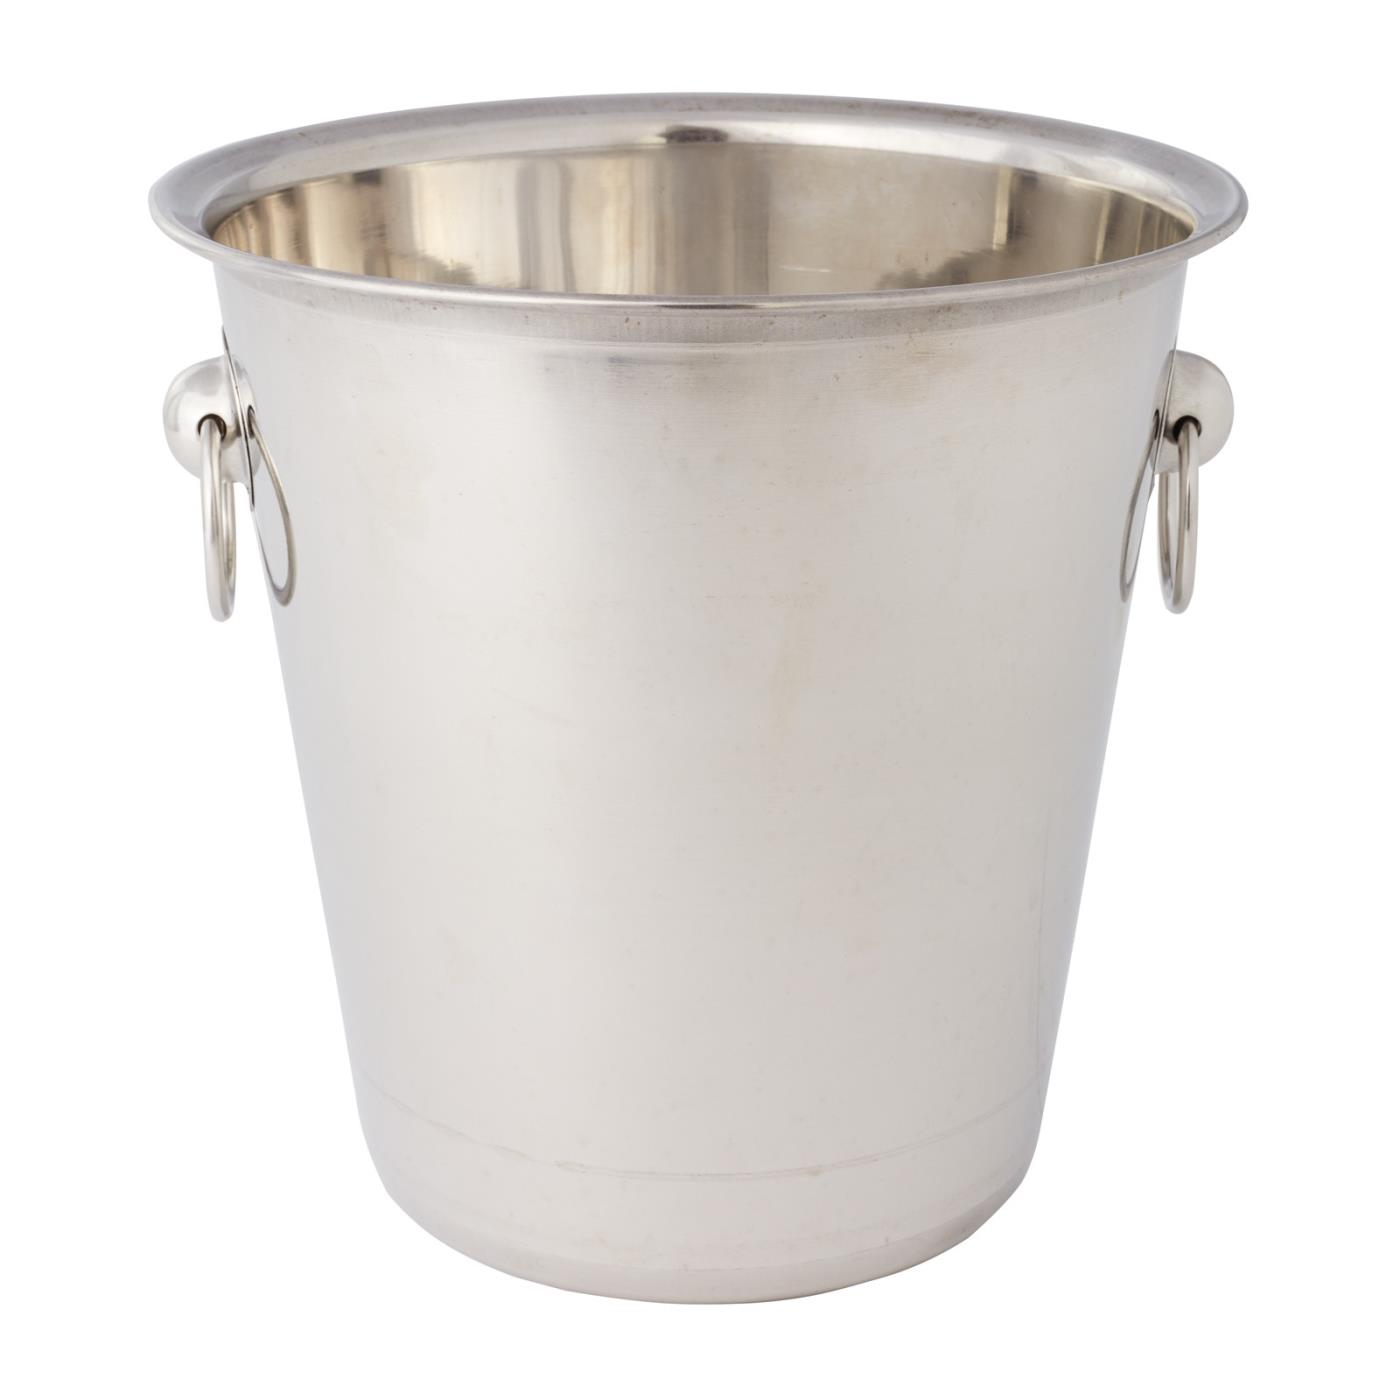 Champagne Bucket - Stainless Steel